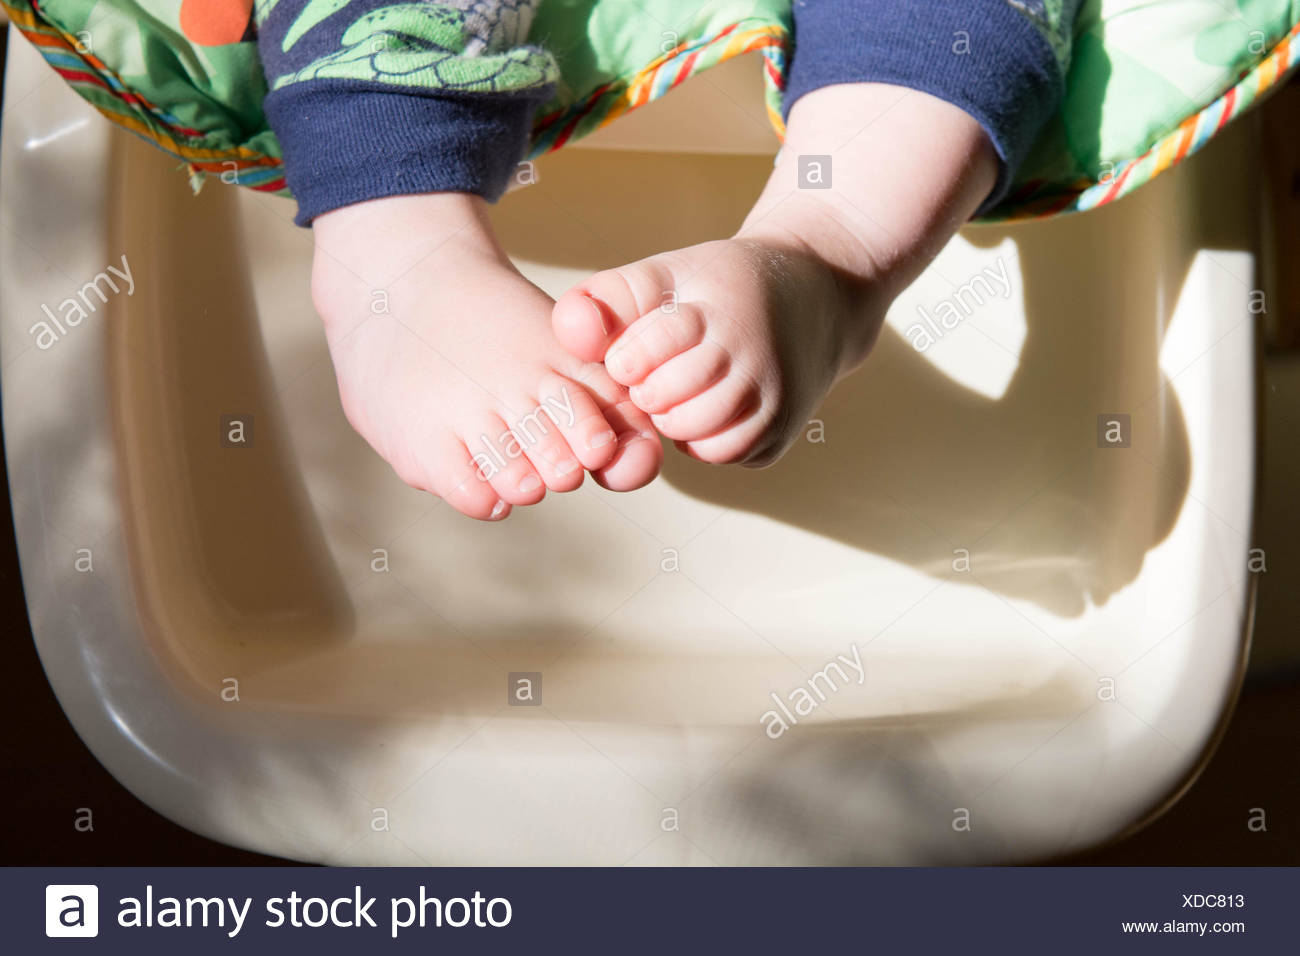 Close-up of a Boy's feet Photo Stock